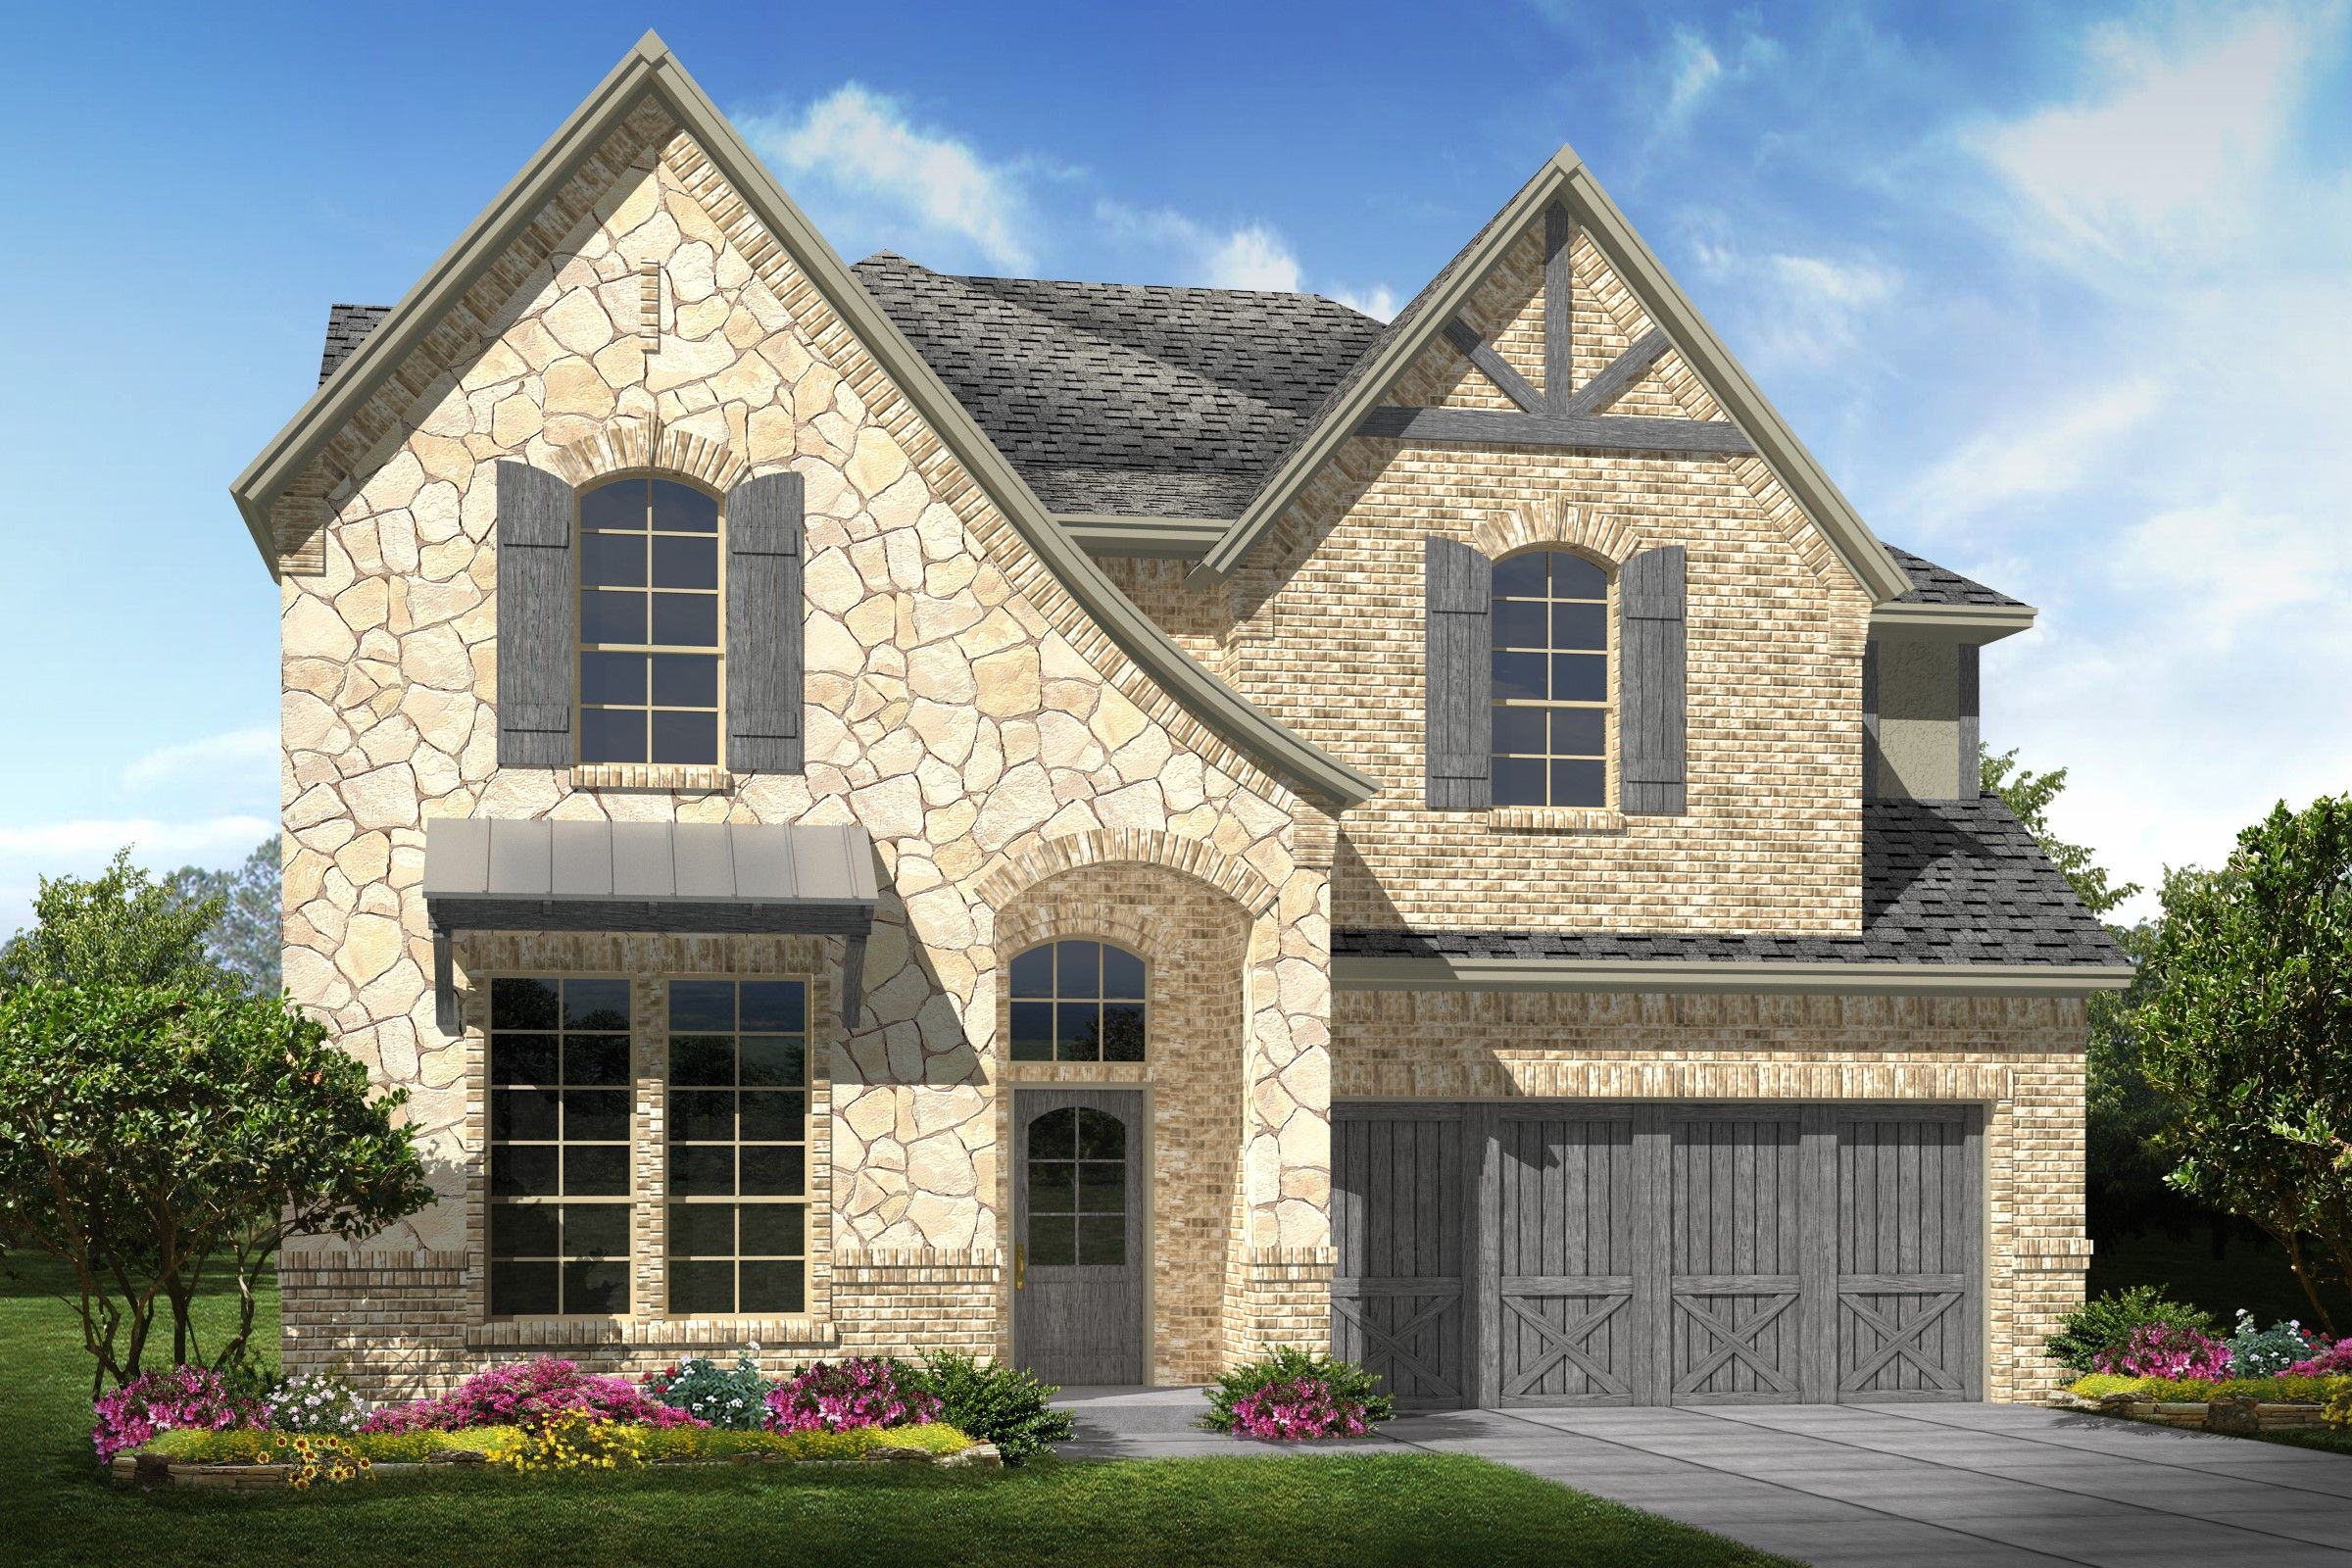 Single Family for Sale at Glade Parks - Summerwood Ii 2608 San Jacinto Drive Euless, Texas 76039 United States